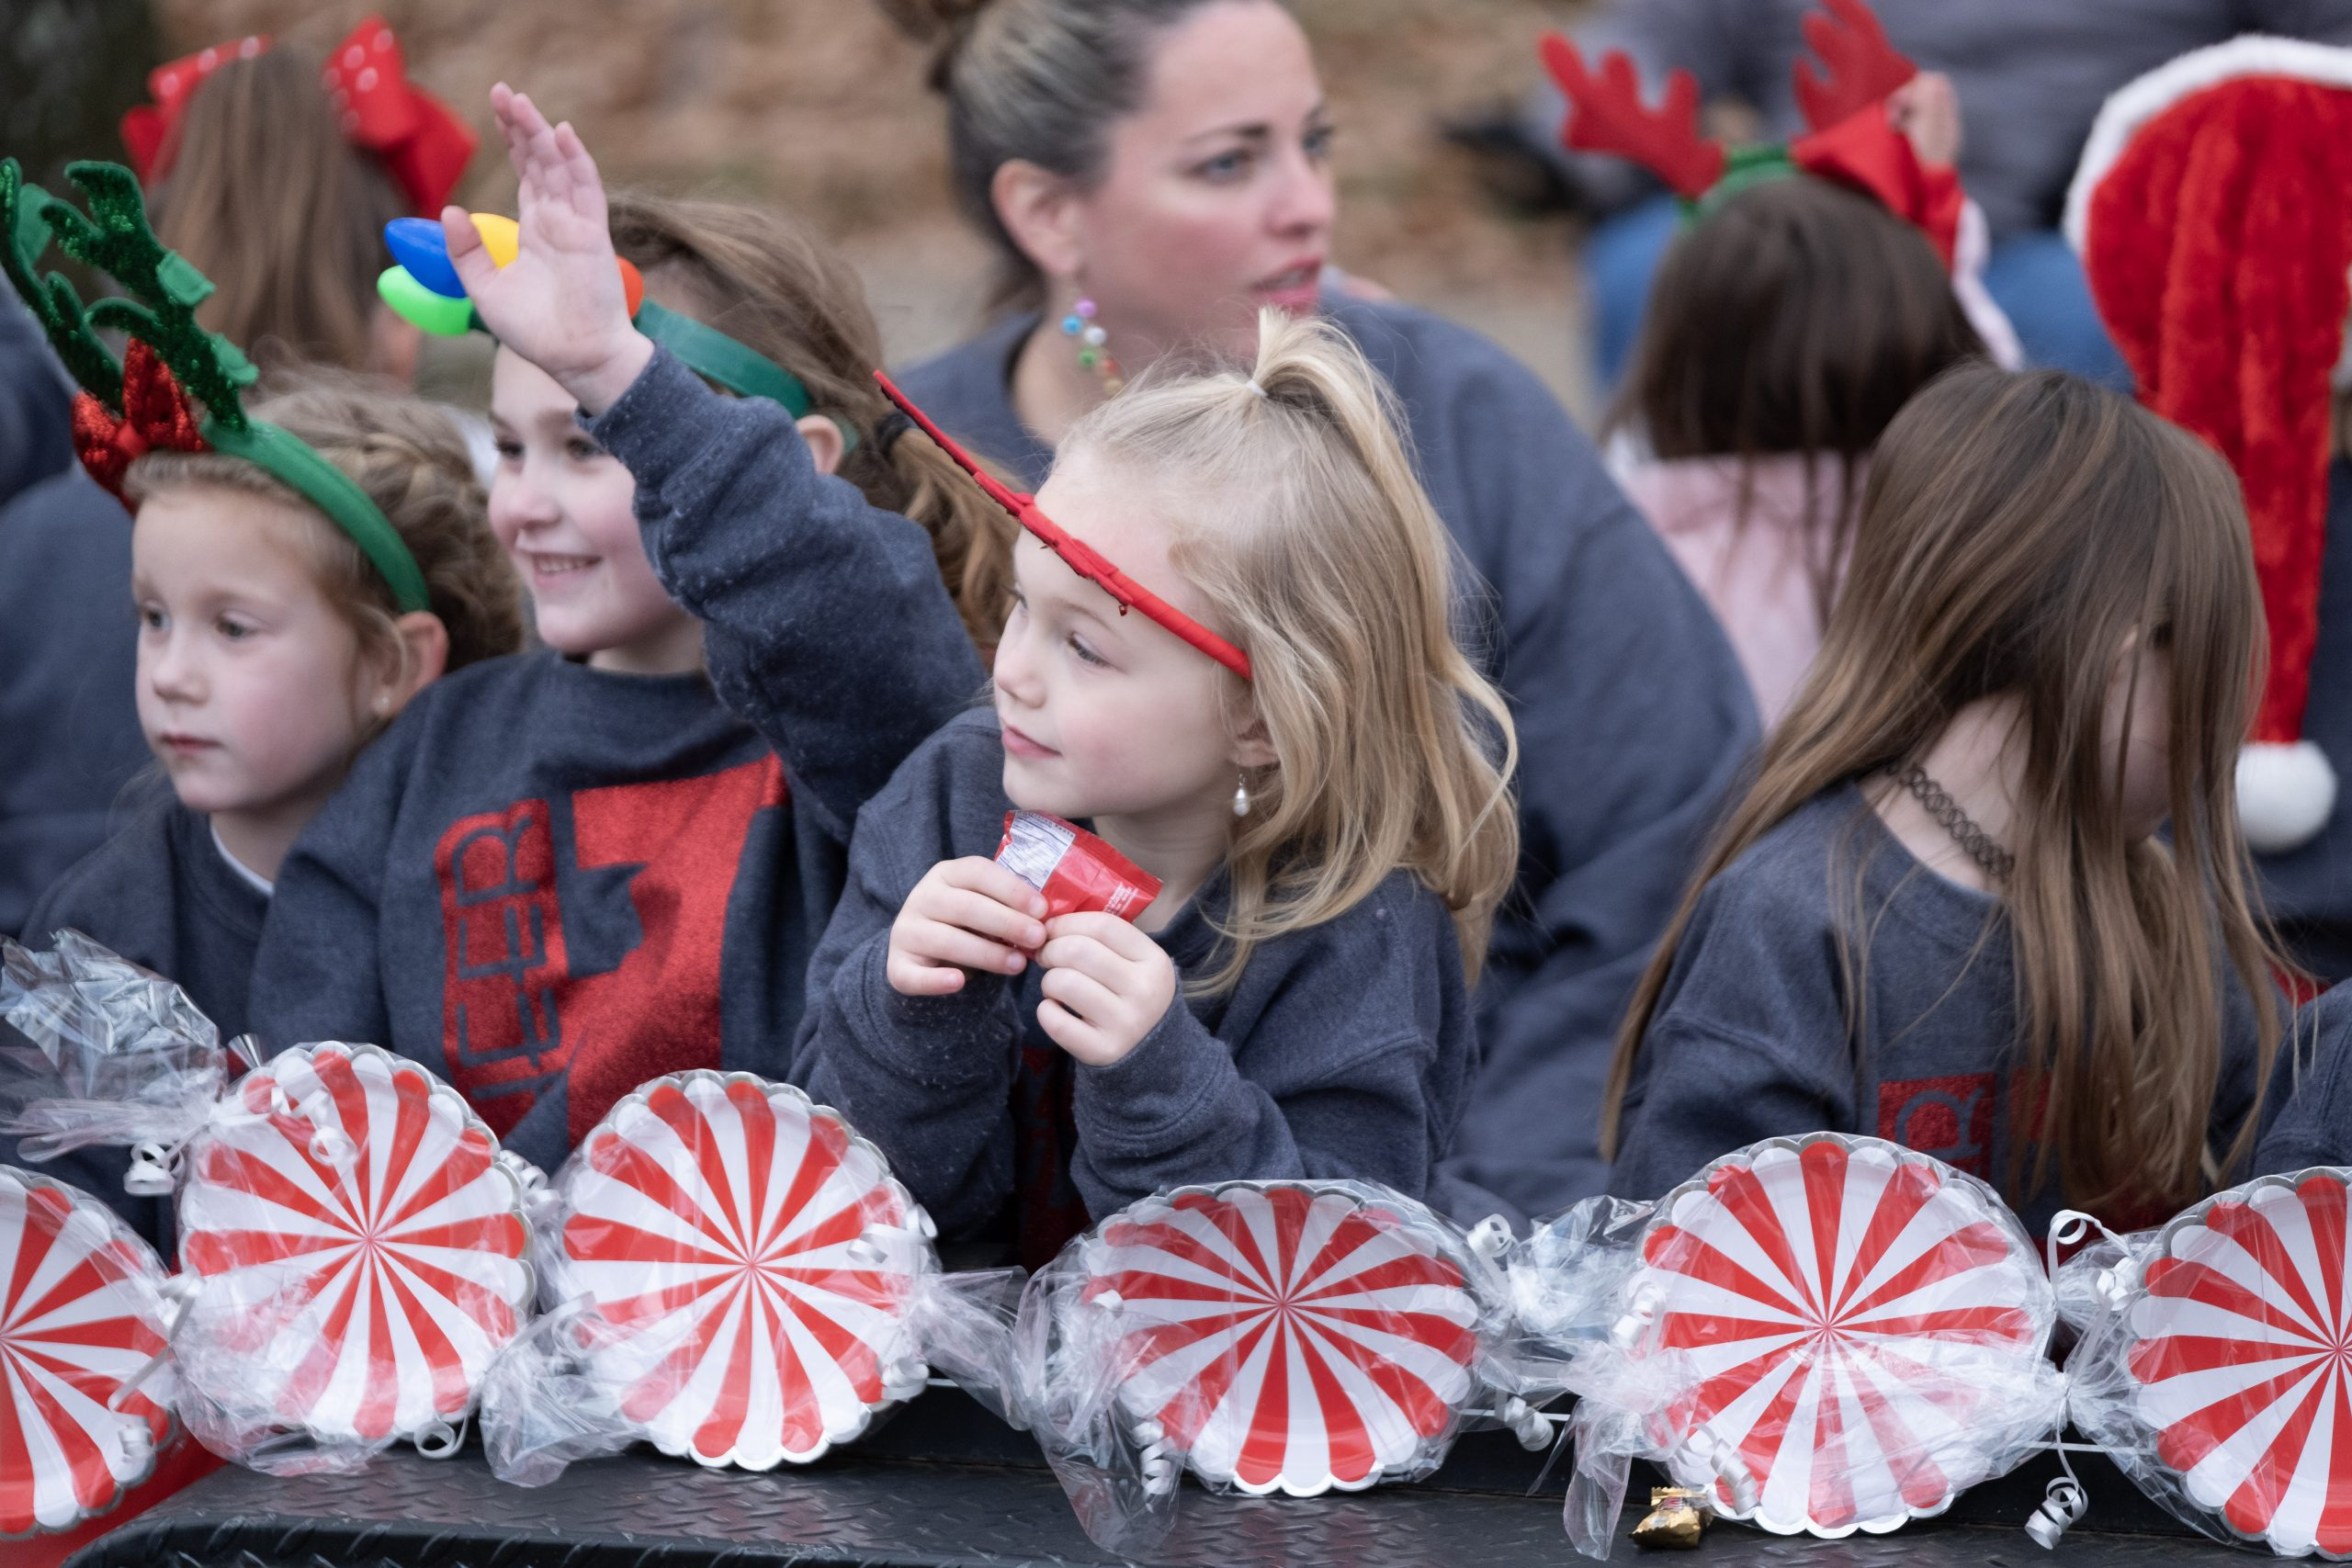 Walker Christmas Parade 2021 Map Trussville Christmas Parade Scheduled For Saturday Dec 12 2020 The Trussville Tribune